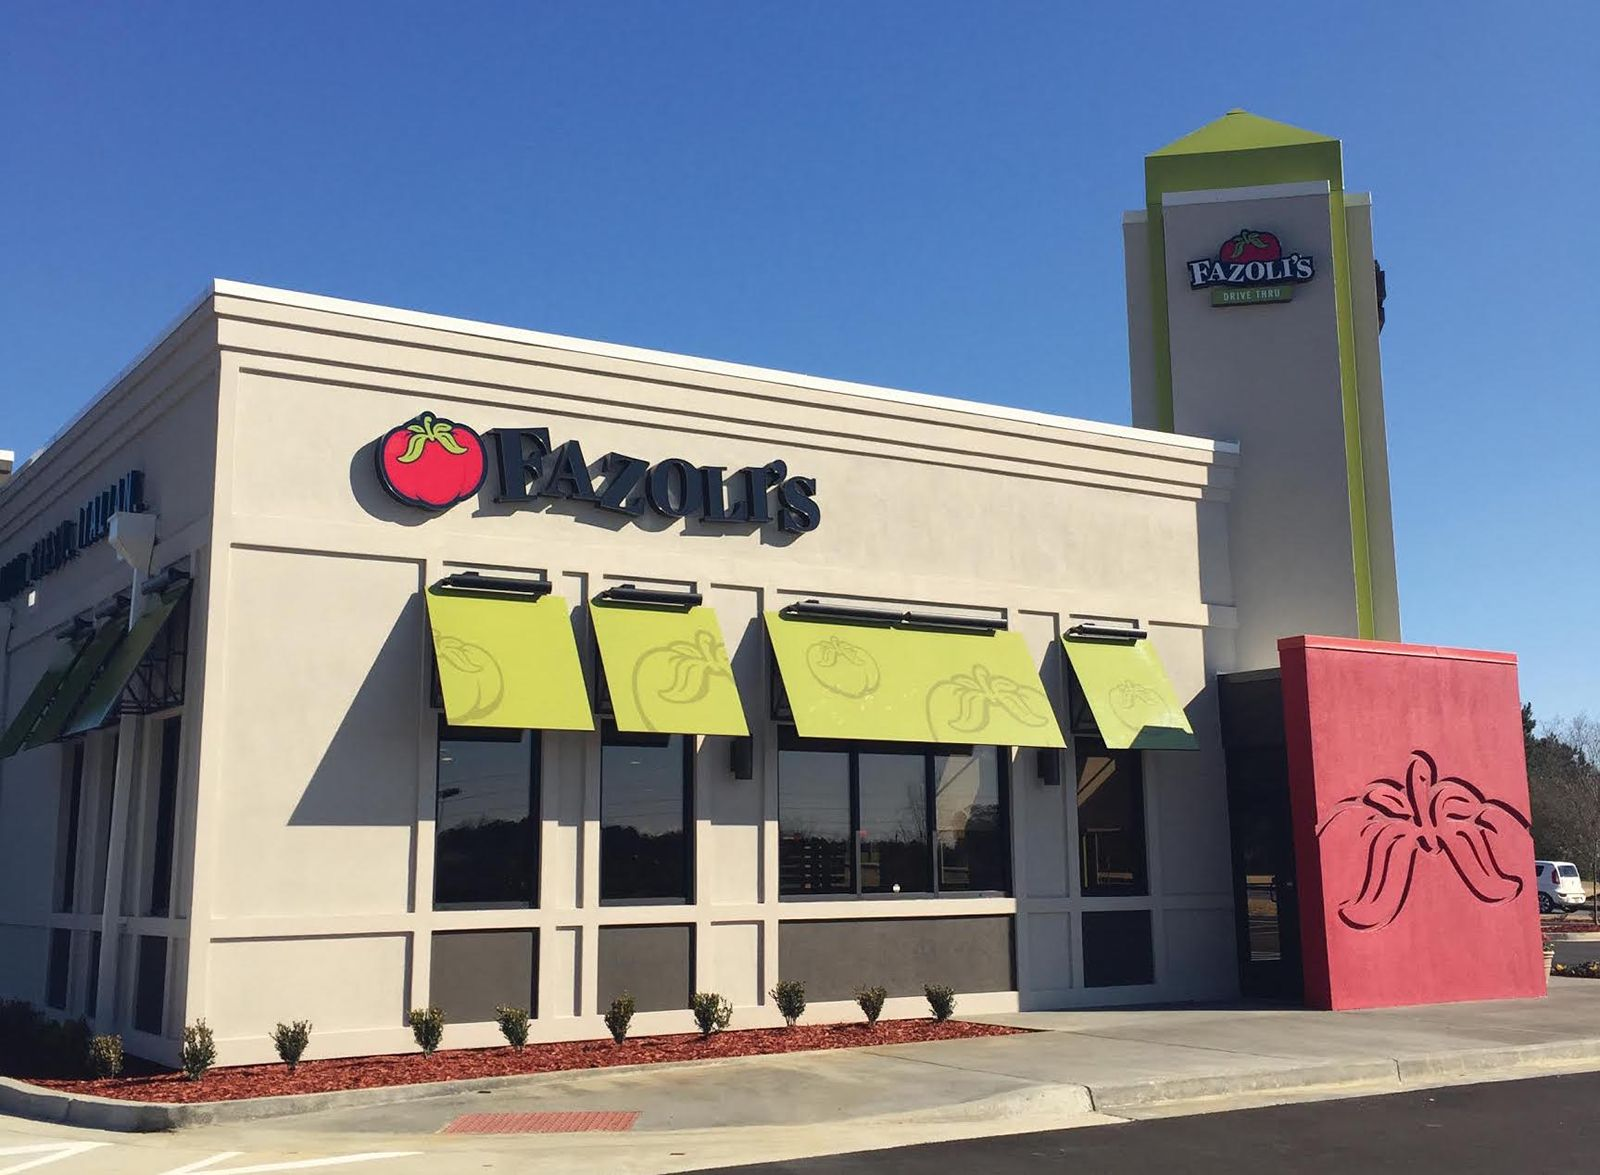 Fazoli's Newest Location Breaks The $100,000 Weekly Sales Barrier As Brand Celebrates 12 Franchise Sales Records And Five New Openings During First Quarter Of 2018